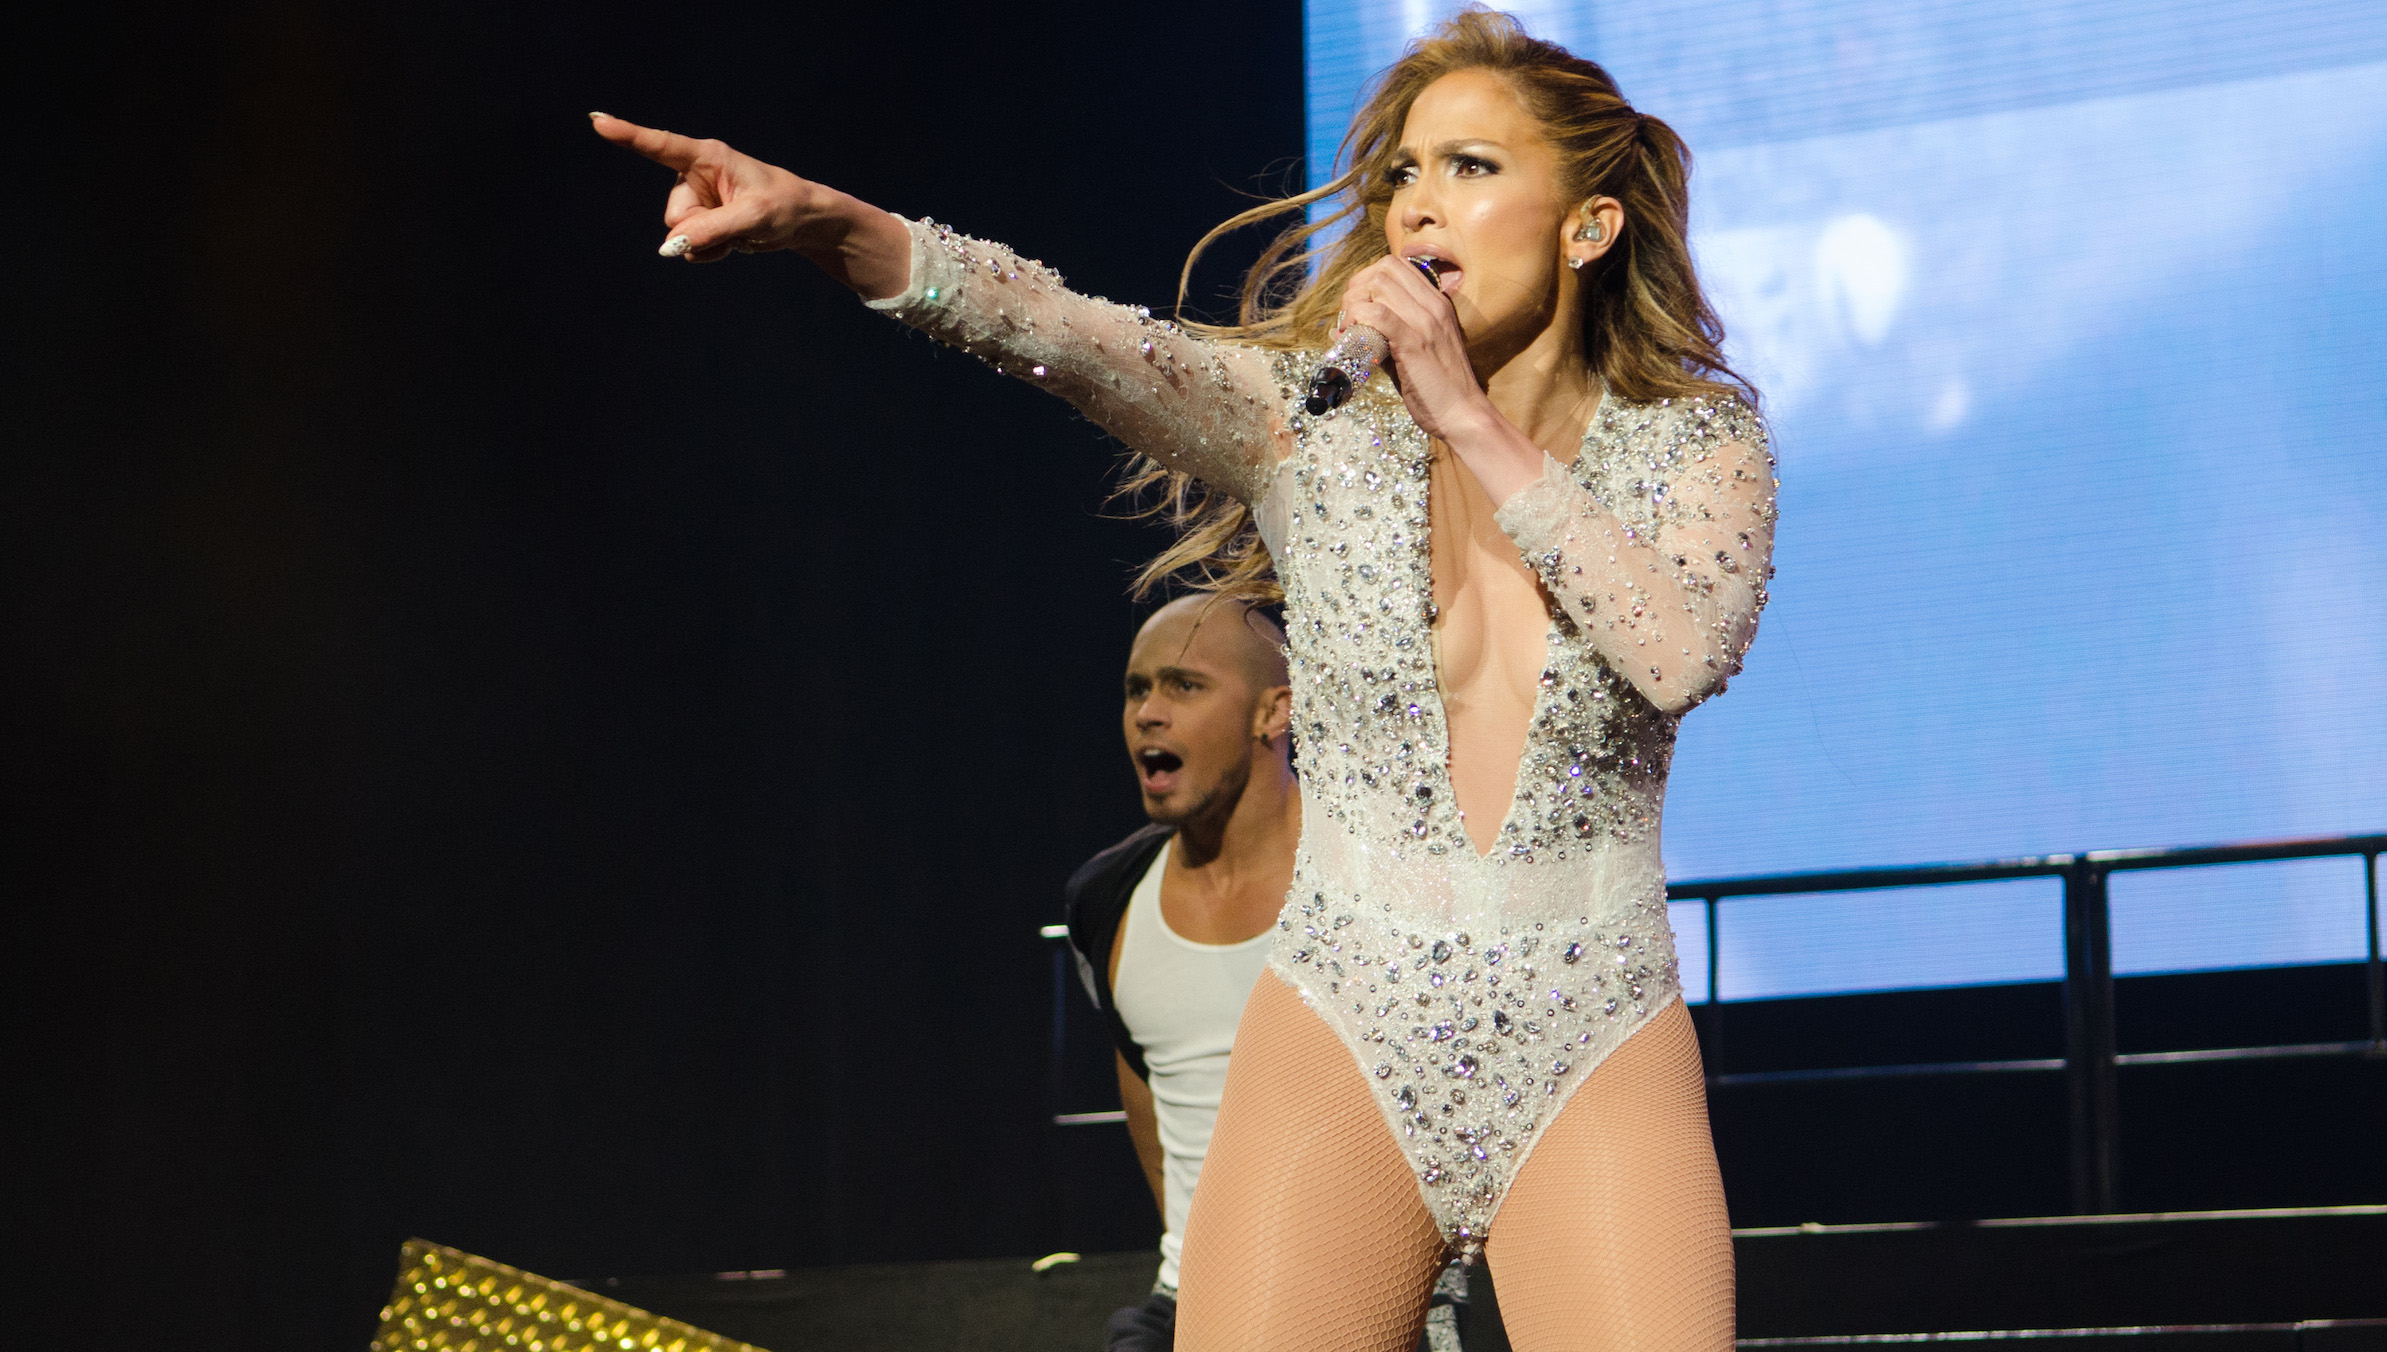 Jennifer Lopez performs at 103.5 KTU's KTUphoria at IZOD Center on Sunday, June 29, 2014, in East Rutherford, NJ. (Photo by Scott Roth/Invision/AP)